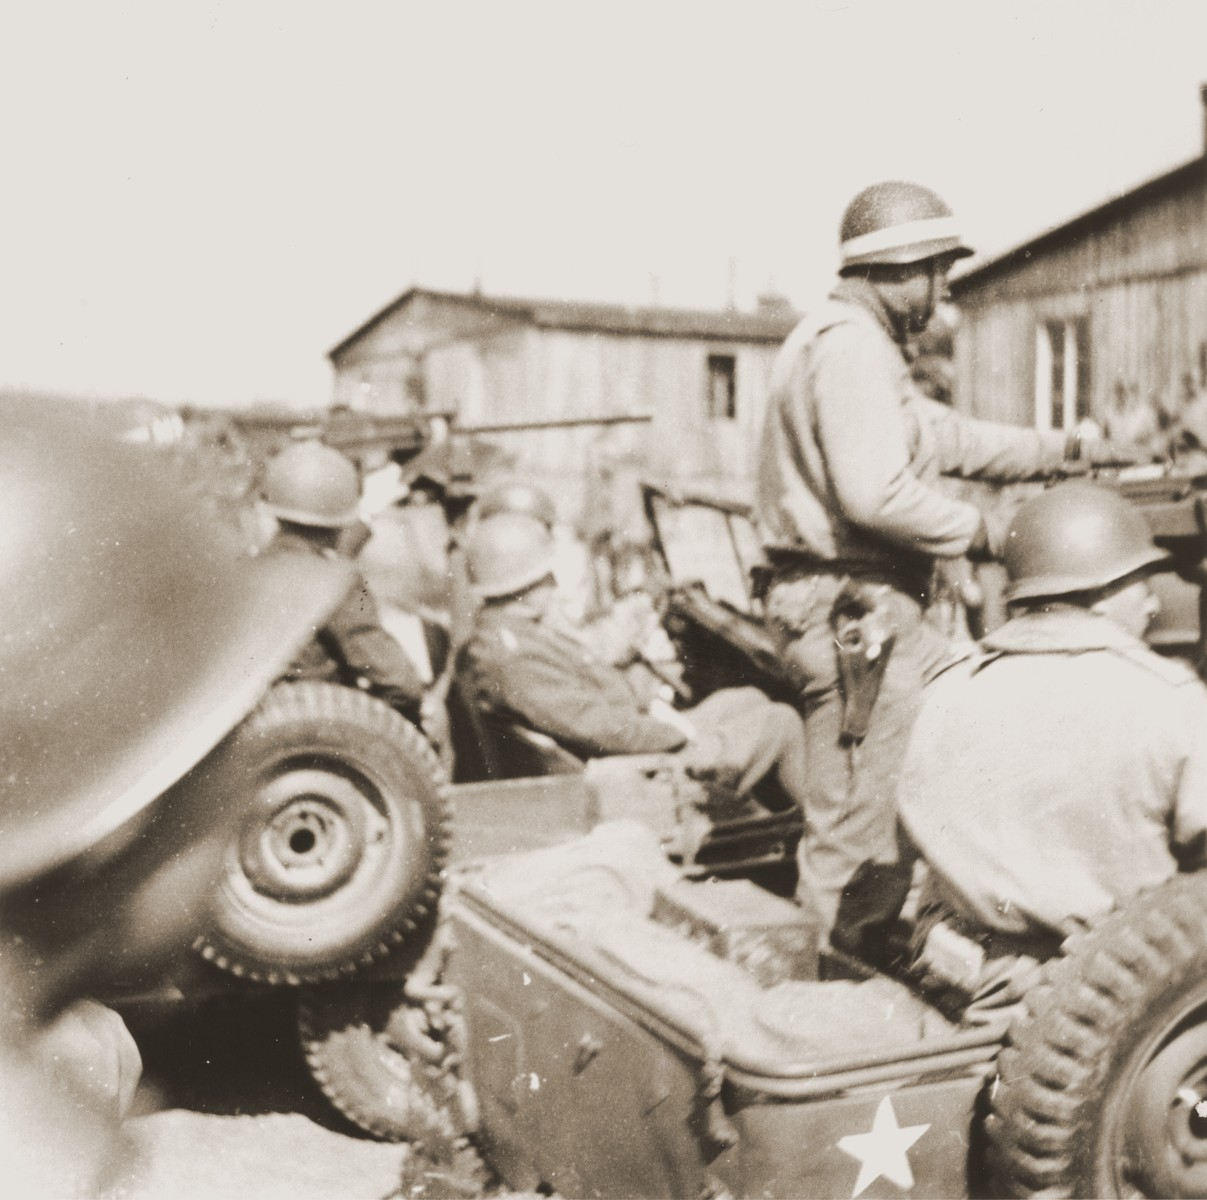 General George S. Patton (seated in the middle jeep) arrives by jeep at the newly liberated Ohrdruf concentration camp in the company of a large group of American troops.